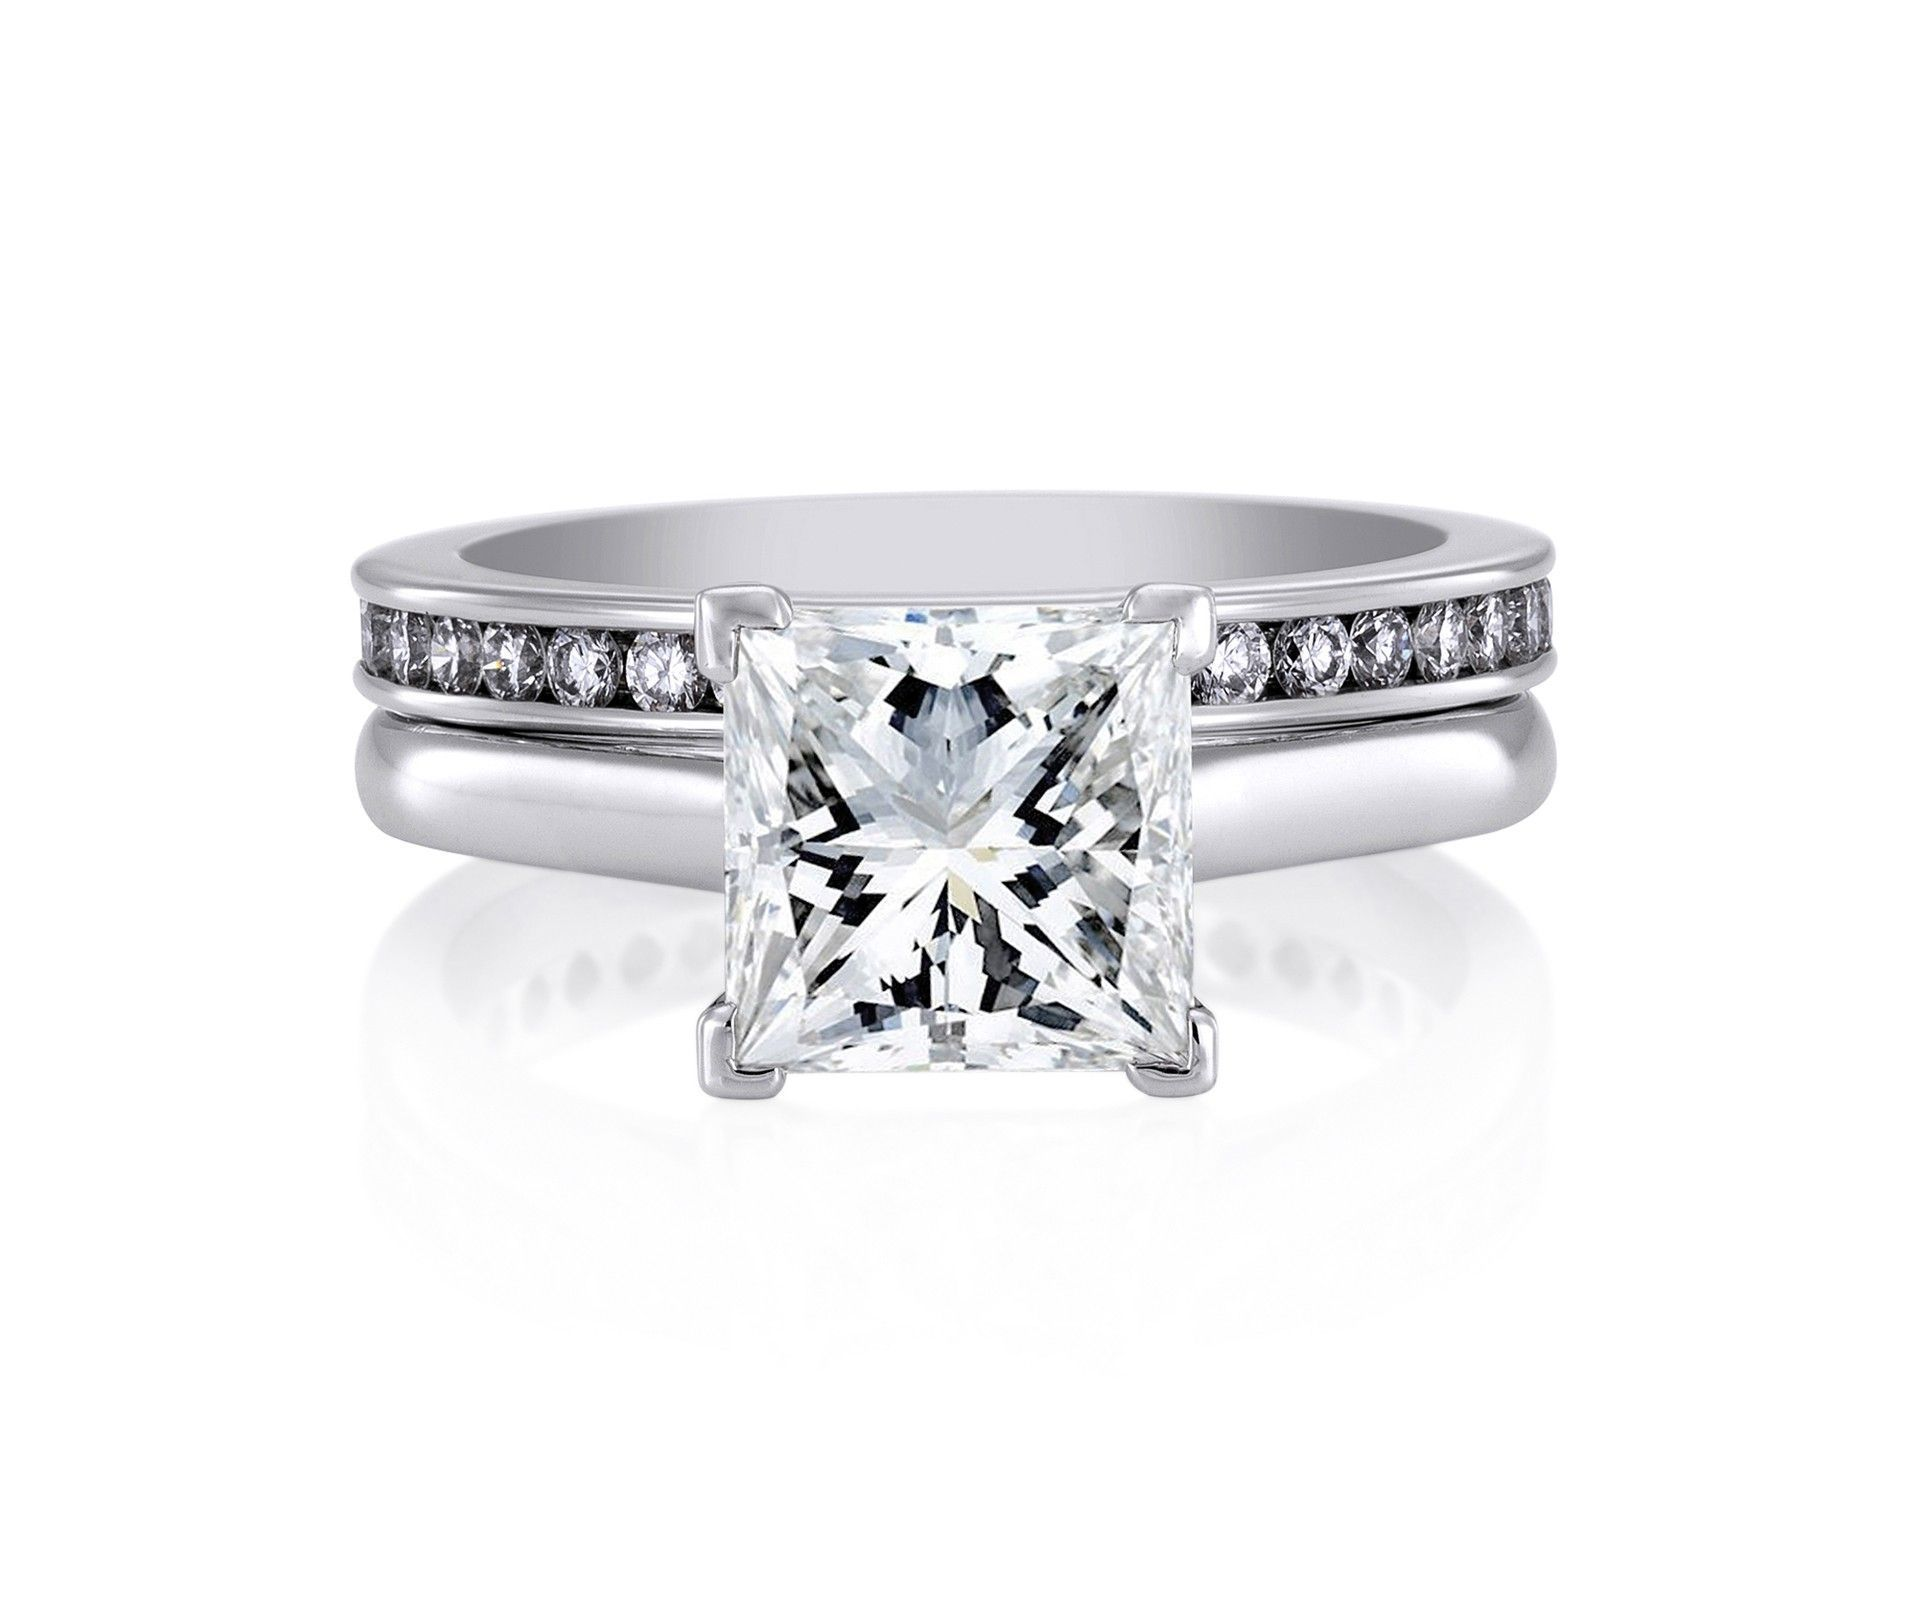 DB Classic Platinum Princess Cut Solitaire Engagement Ring De